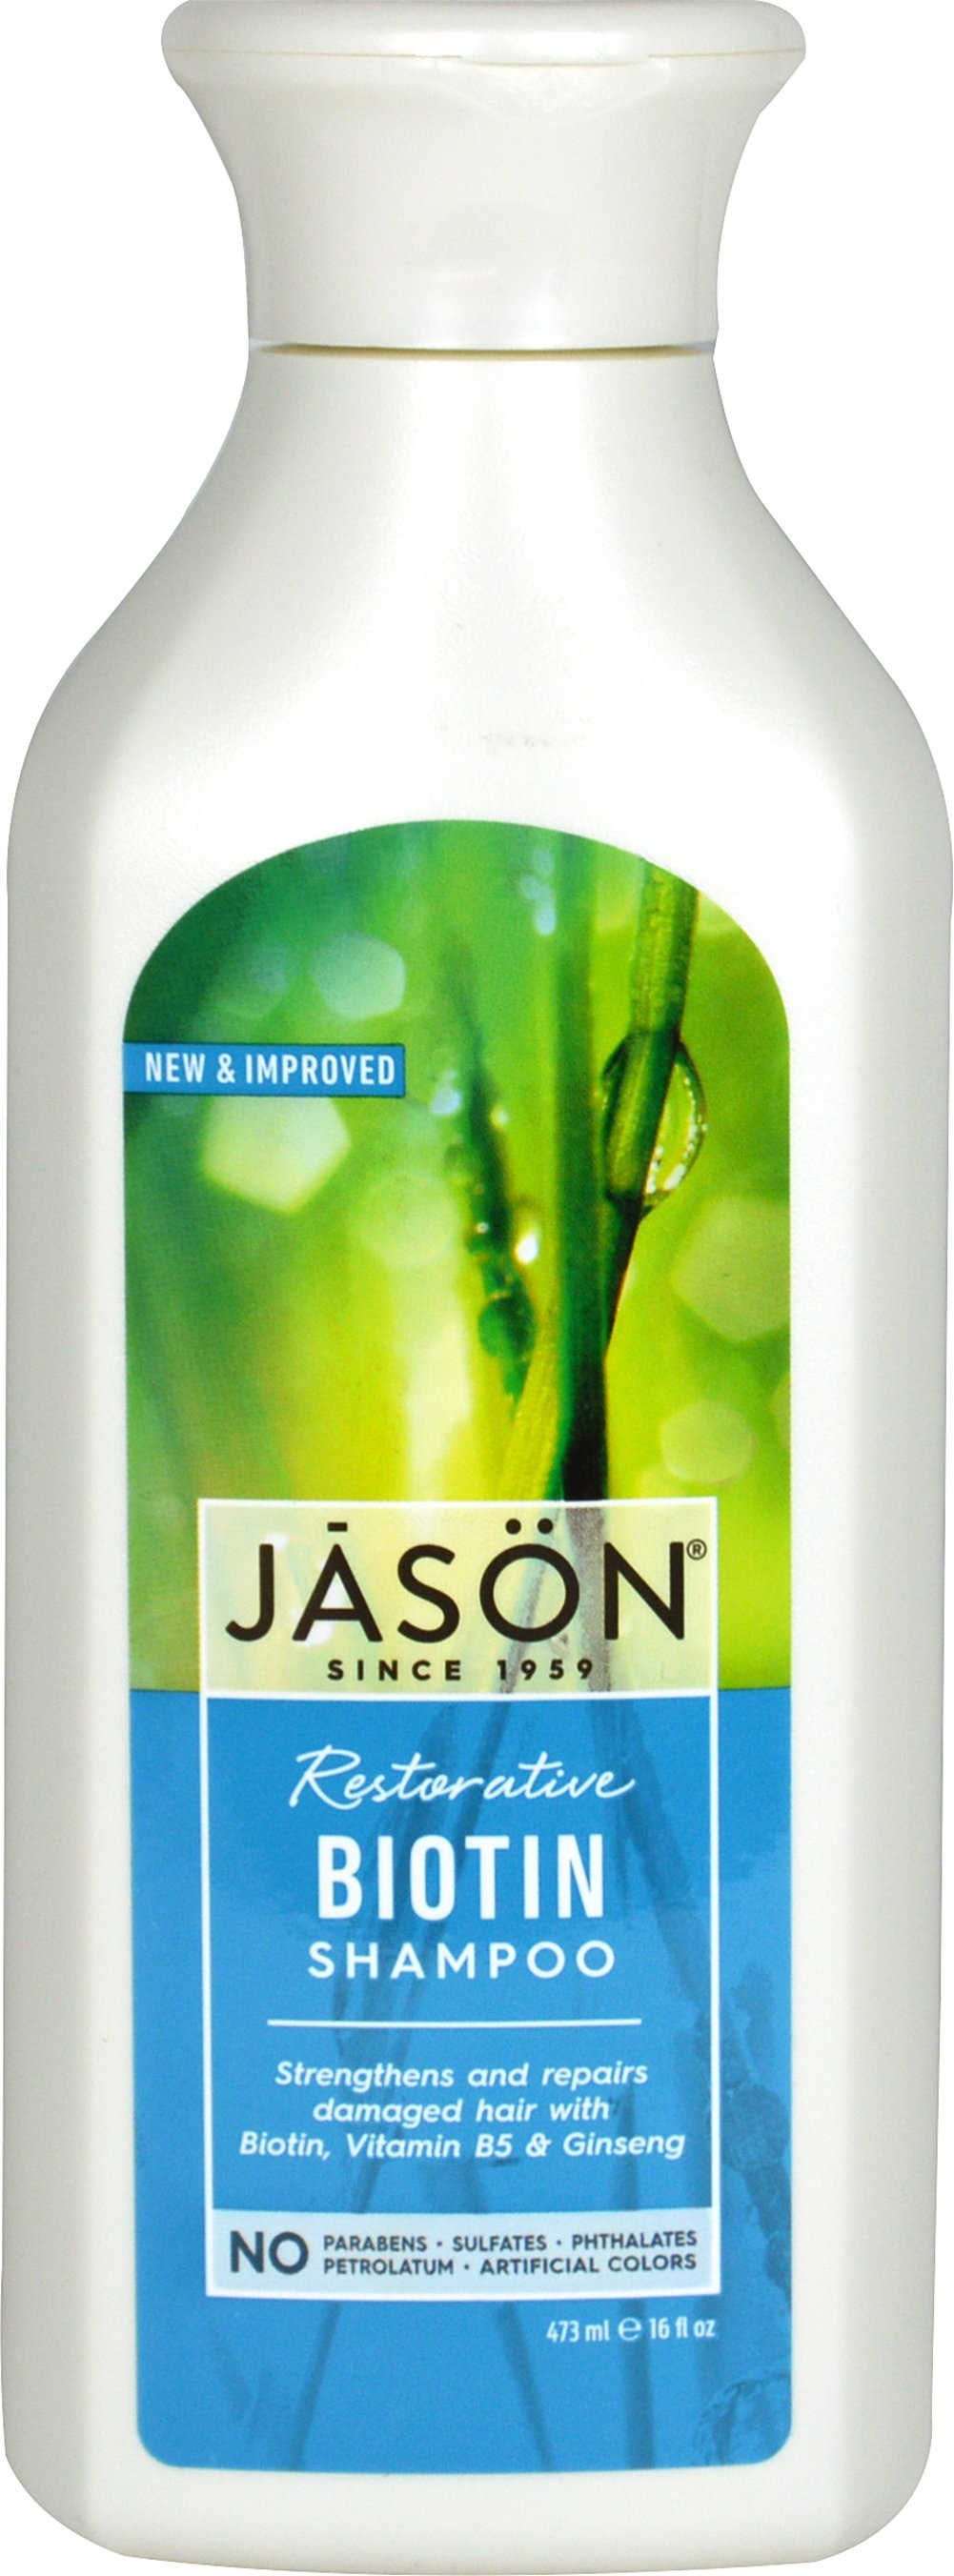 "Jason® Natural Biotin Hair Restorative Shampoo <p><strong>From the Manufacturer's Label: </strong></p><p>Enriched with Plant Proteins, Ginseng and Chamomile</p><p>Helps Promote Healthier Hair</p><p>Jason Natural Biotin Shampoo is formulated to gently cleanse hair and scalp and help alleviate dry, itchy scalp, repair damaged hair and split ends with ""bio-active"" natural Biotin, Vitamin B5, Certified Organic Extracts of Marig"